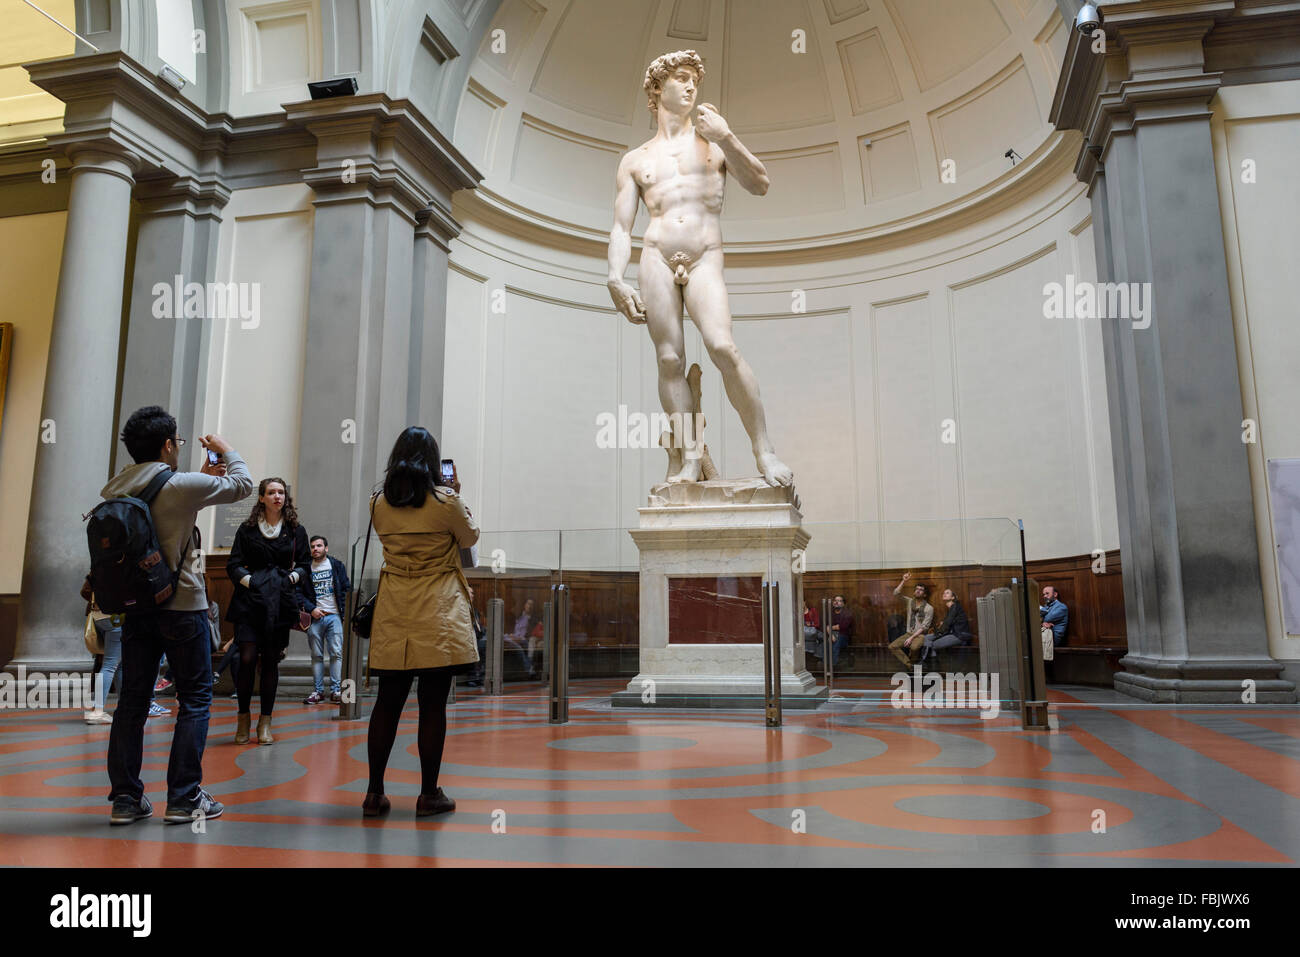 Florence. Italy. Tourists visit Michelangelo's statue of David at the Galleria dell'Accademia museum. Gallery - Stock Image